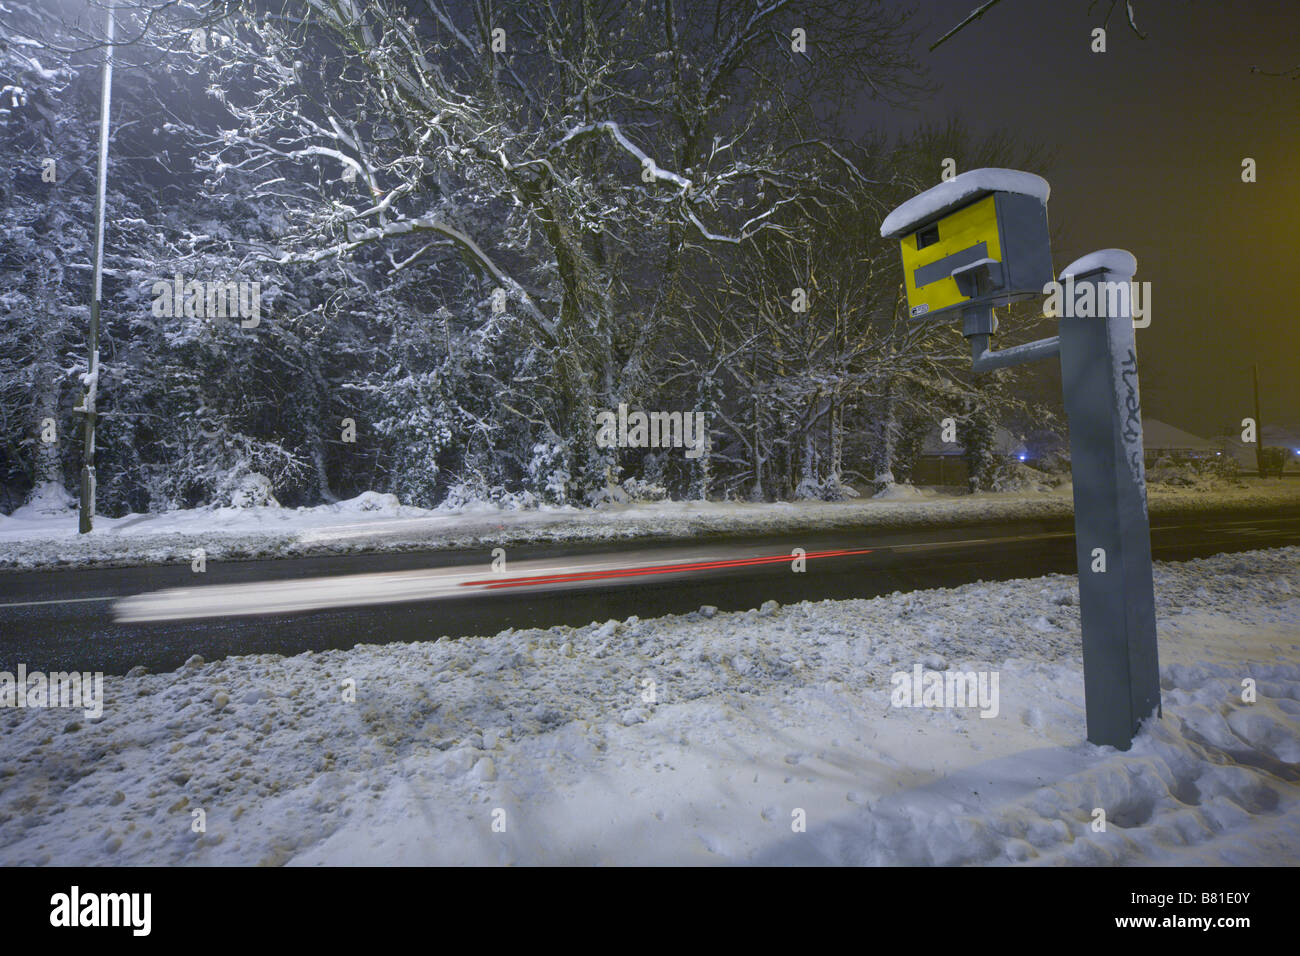 Gatso speed camera in snow on wintery A road Surrey England UK - Stock Image